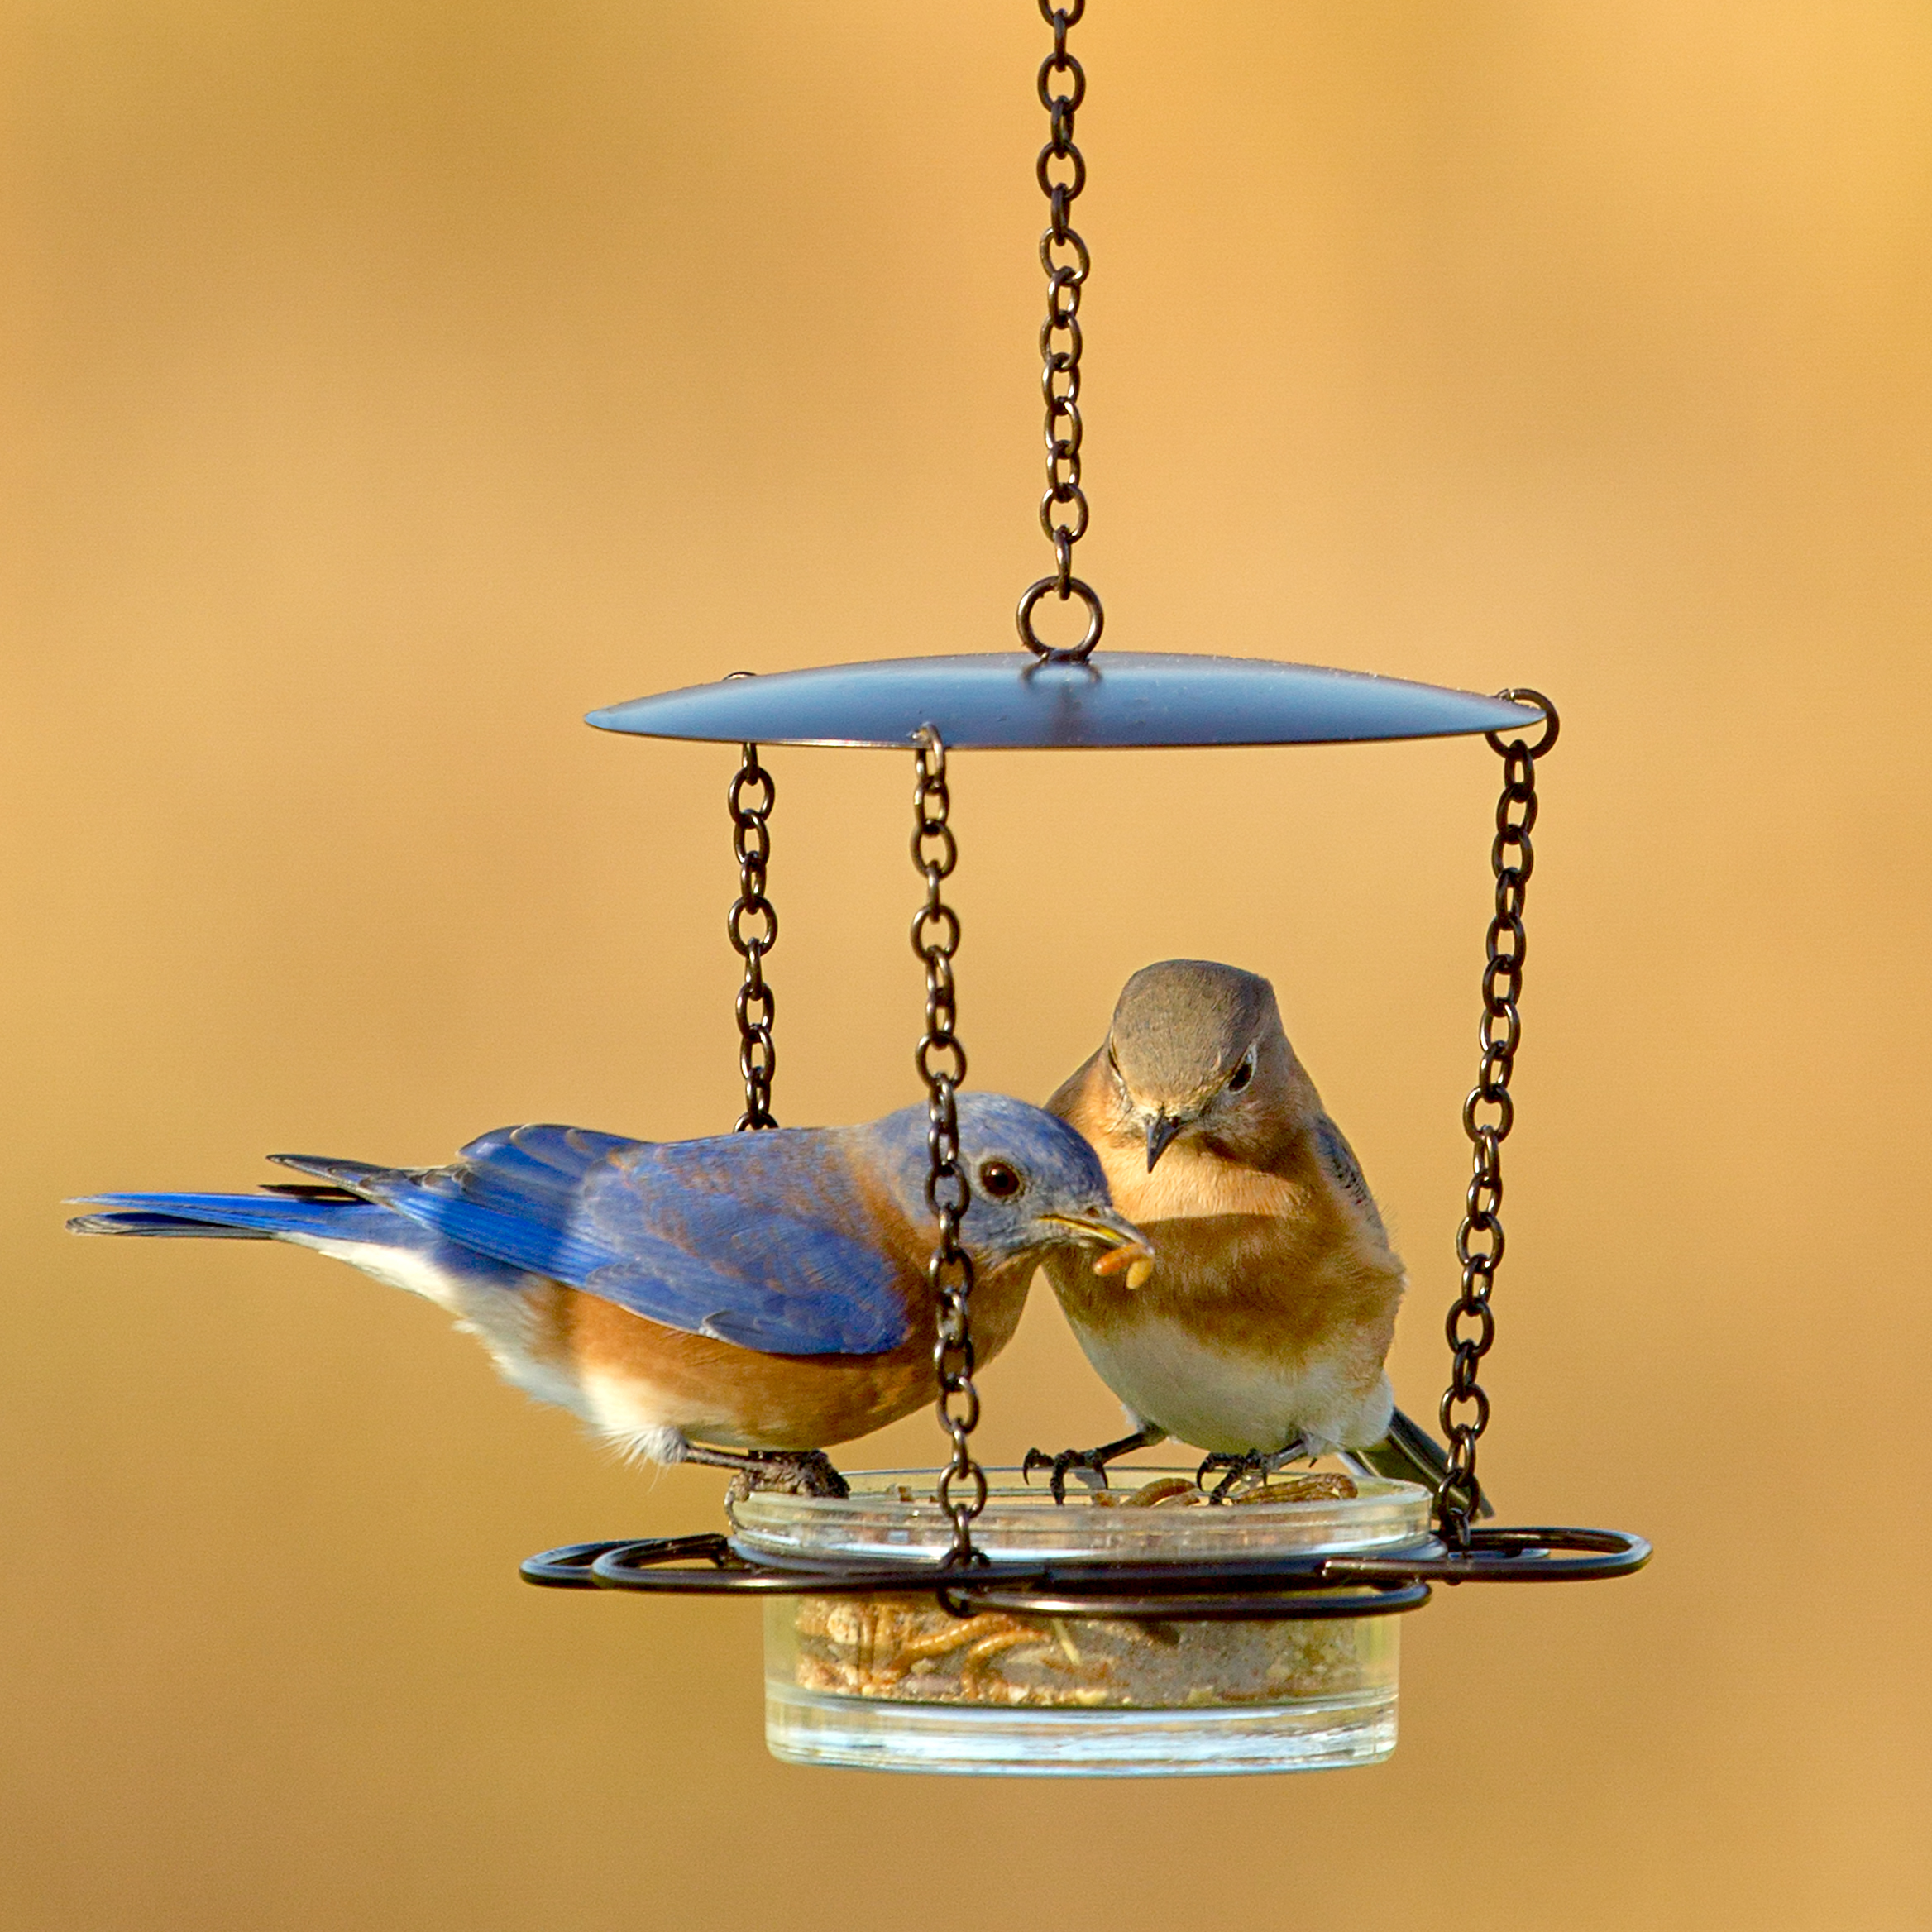 M446-200 Couronneco Hanging Floral Feeder - with mealworms and bluebirds 3MAS9103